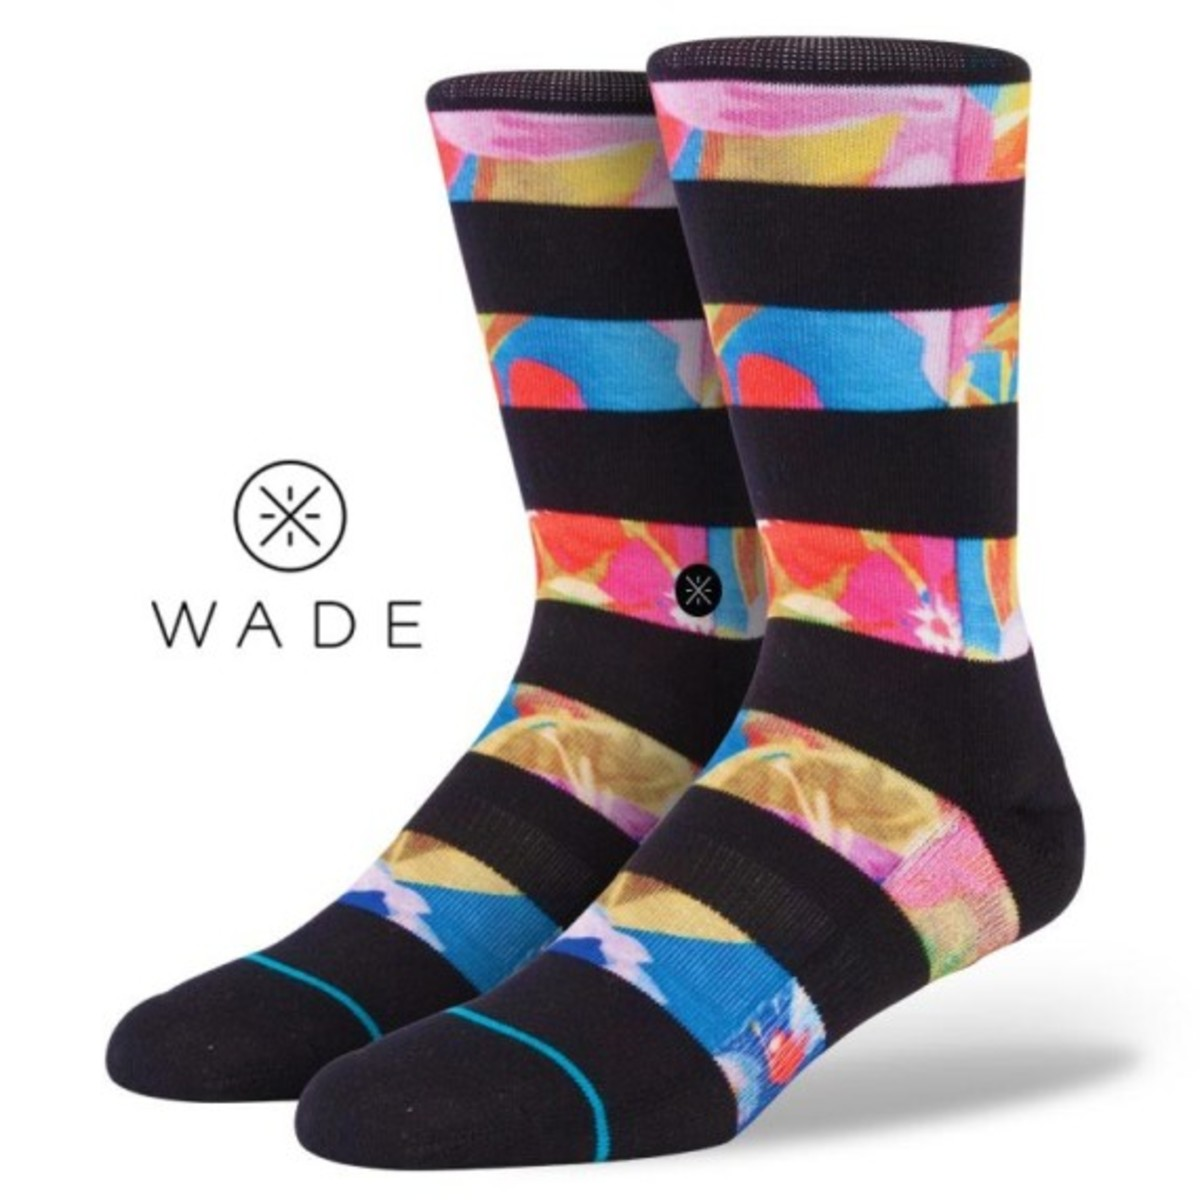 Dwyane Wade x Stance Socks – Summer 2014 Collection - 8